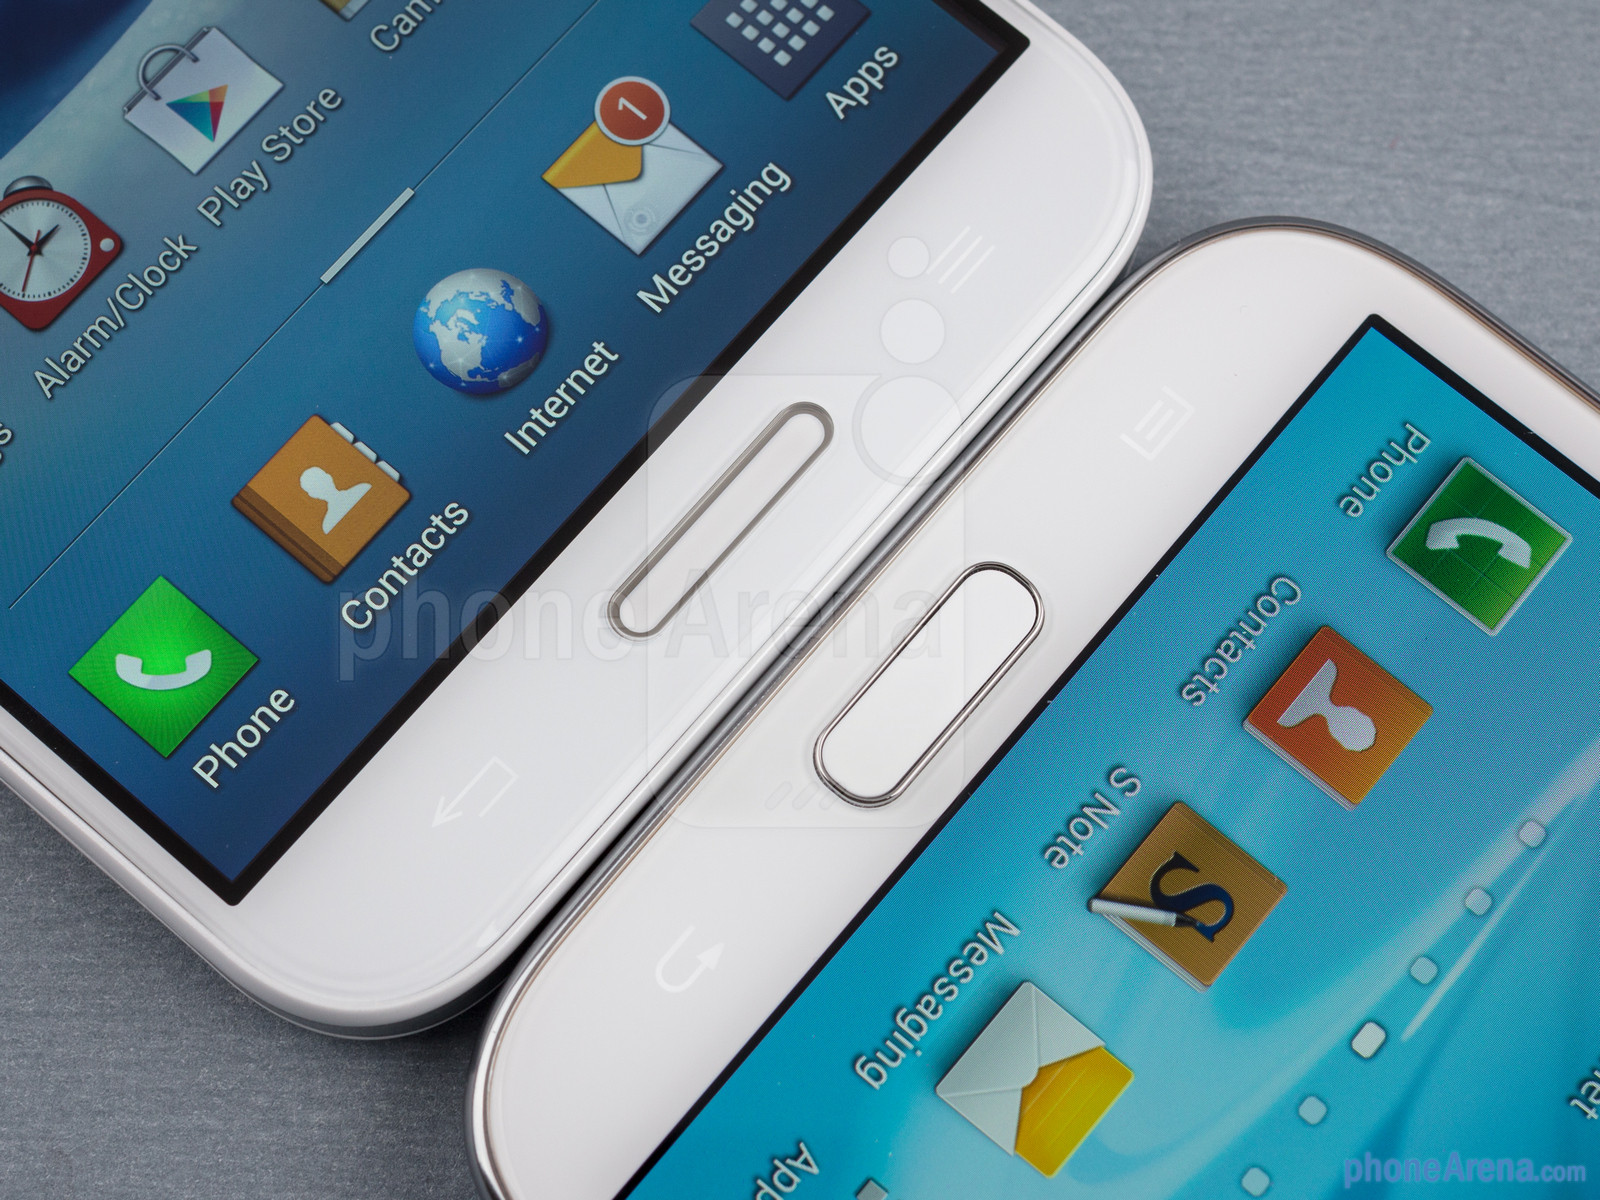 Samsung Galaxy Note 2 Android